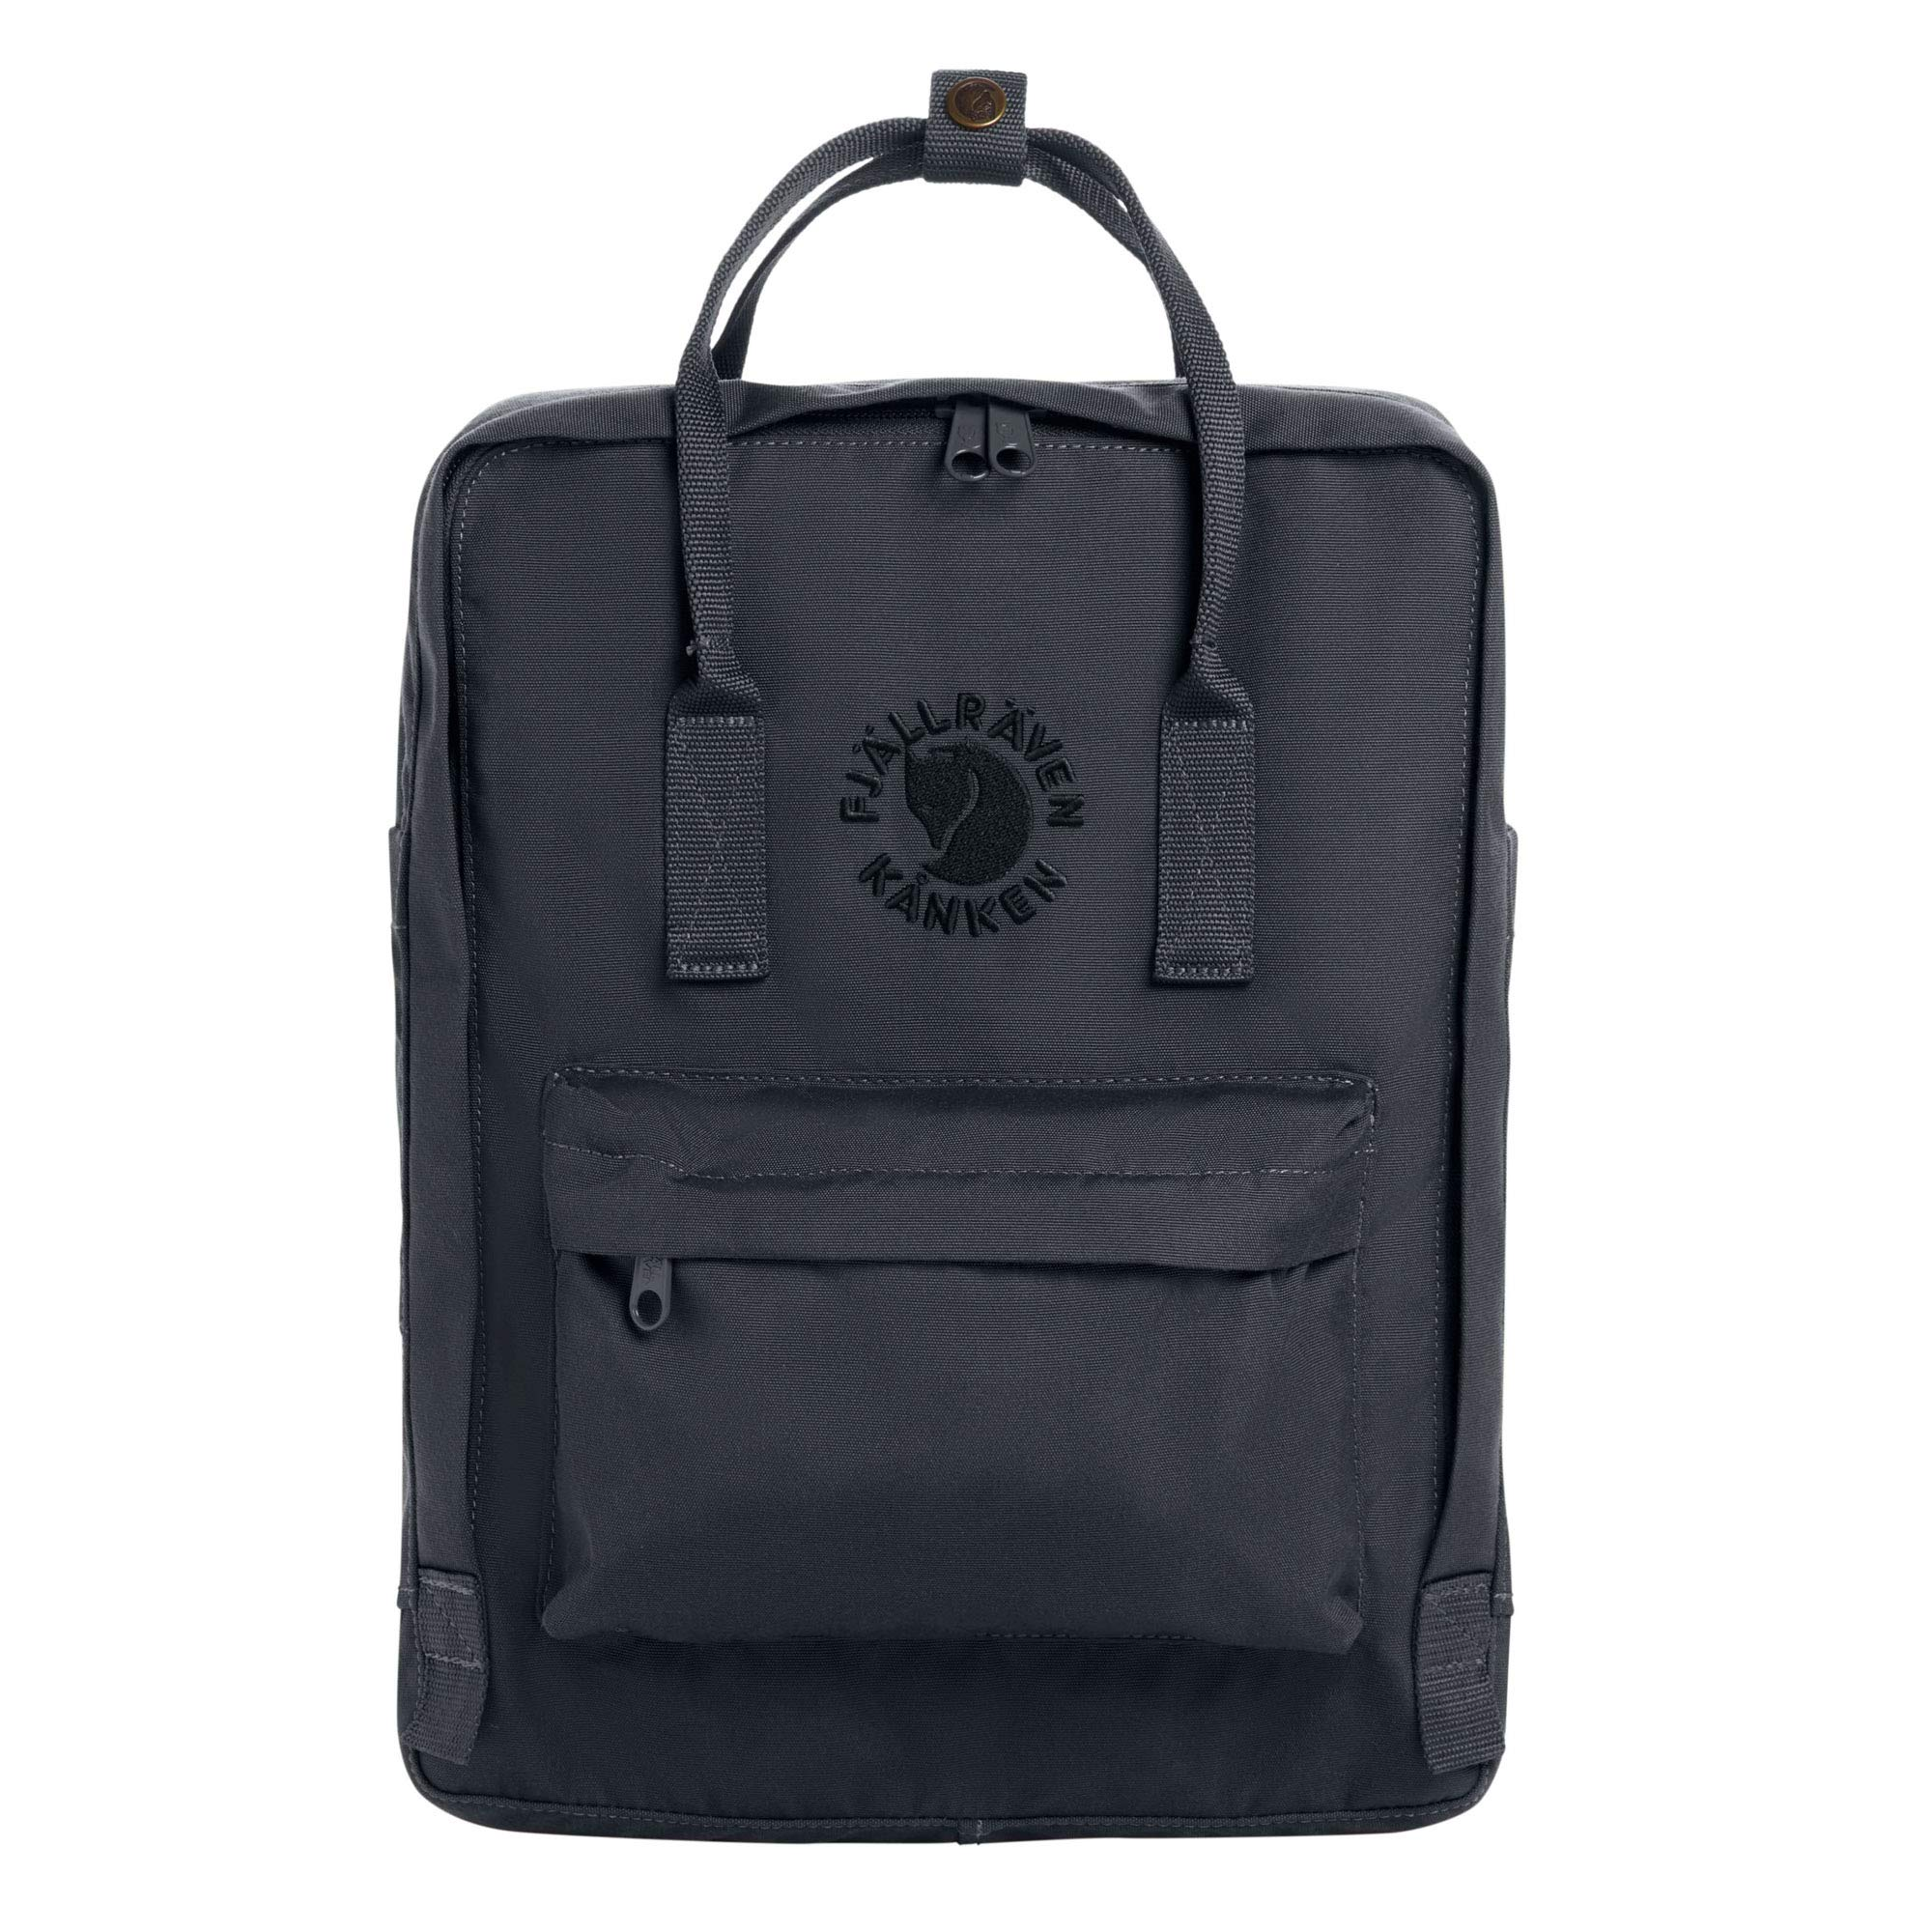 Fjallraven - Re-Kanken Recycled and Recyclable Kanken Backpack for Everyday, Slate by Fjallraven